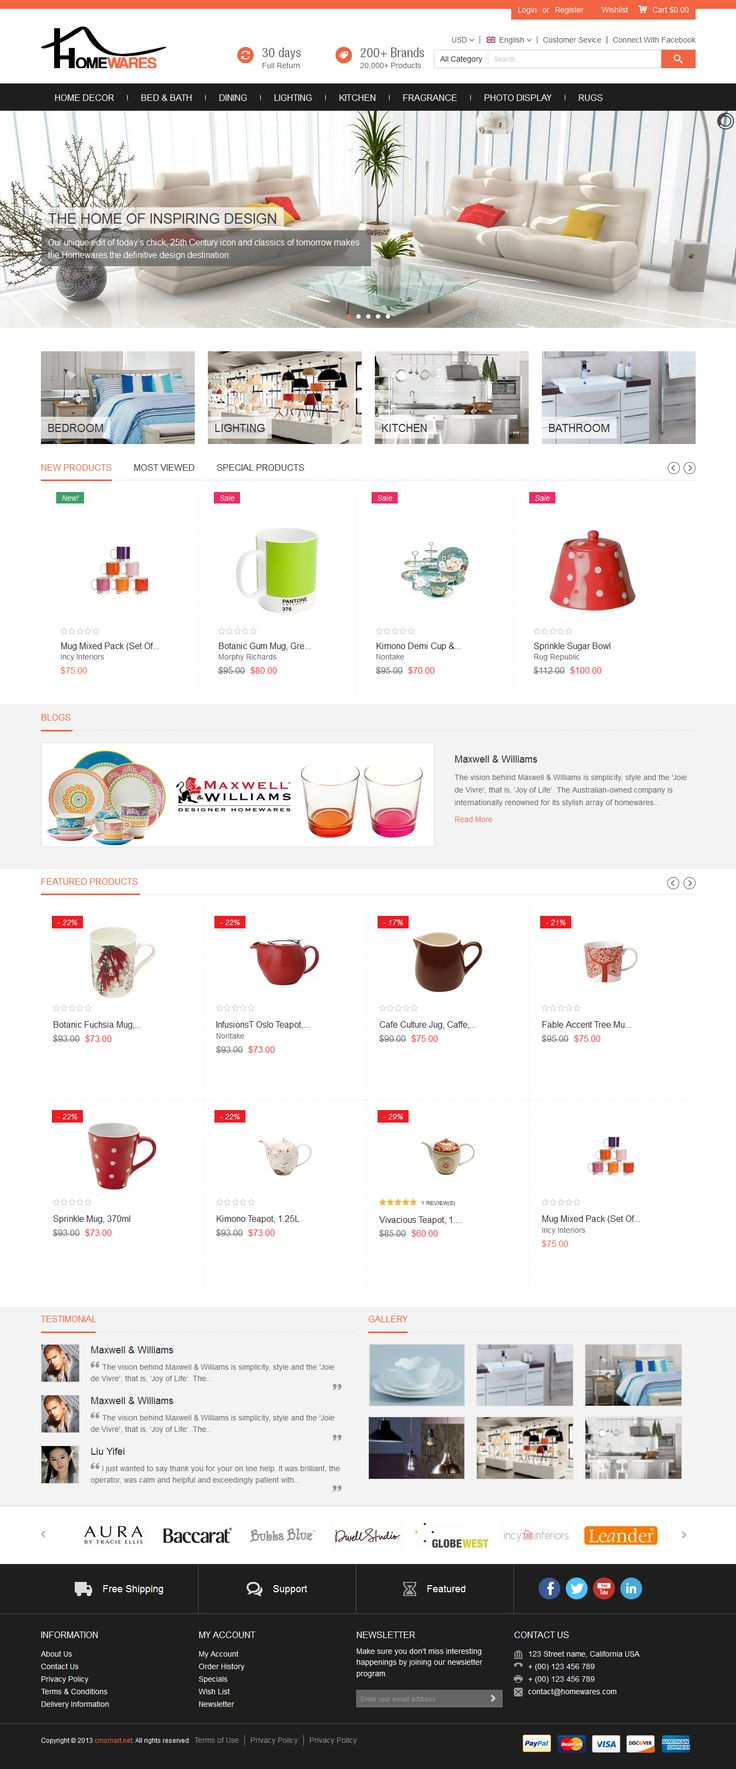 http://magento-homewares-theme.cmsmart.net/magento-themes/magento-homewares-theme Magento Homeware Theme is born bringing the trendsetting interiors and home furnishings to client in a stylish way. The theme has taken care much about brand advertising, and obviously it will drive your home decors store to be more eye-catching than before.